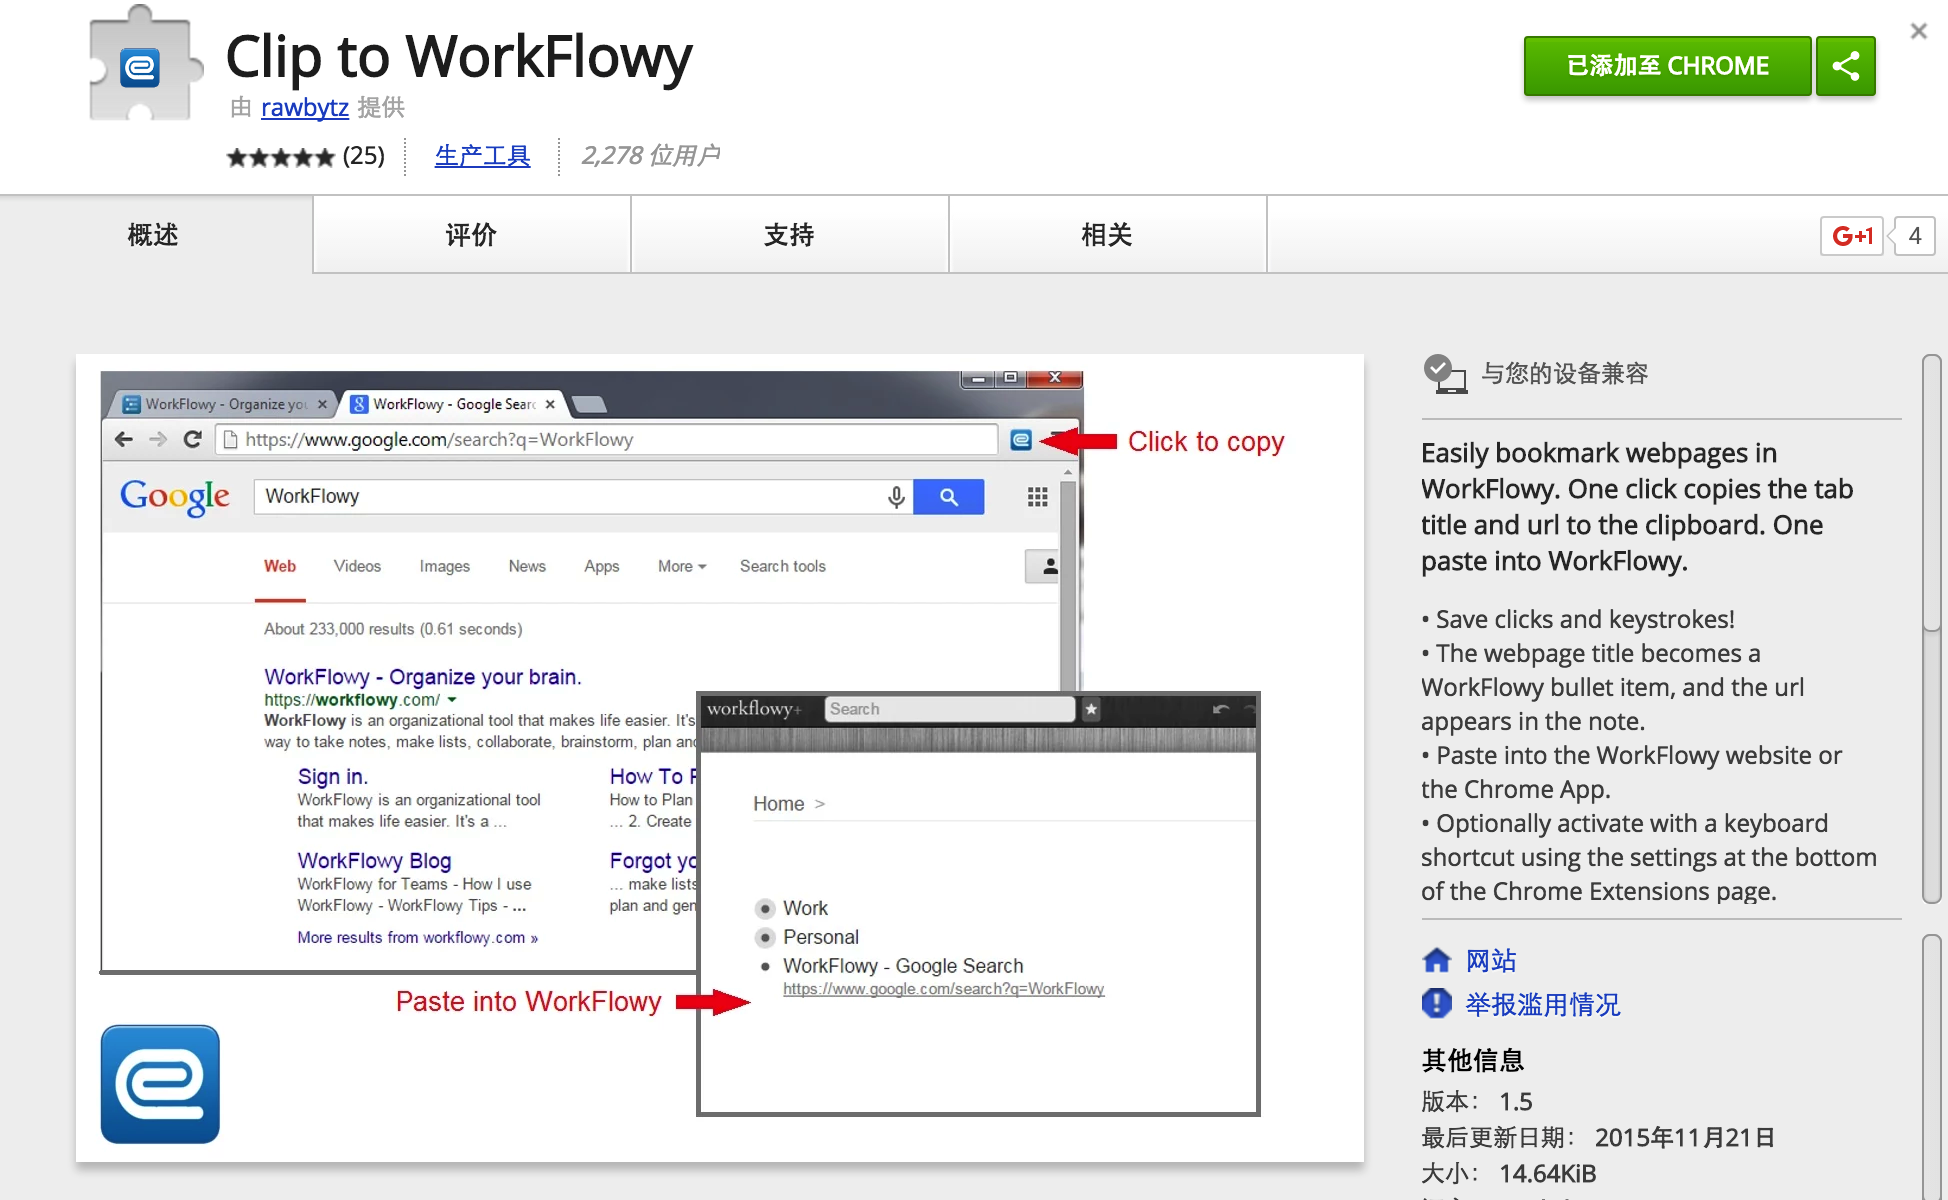 剪藏 workflowy.png-658kB